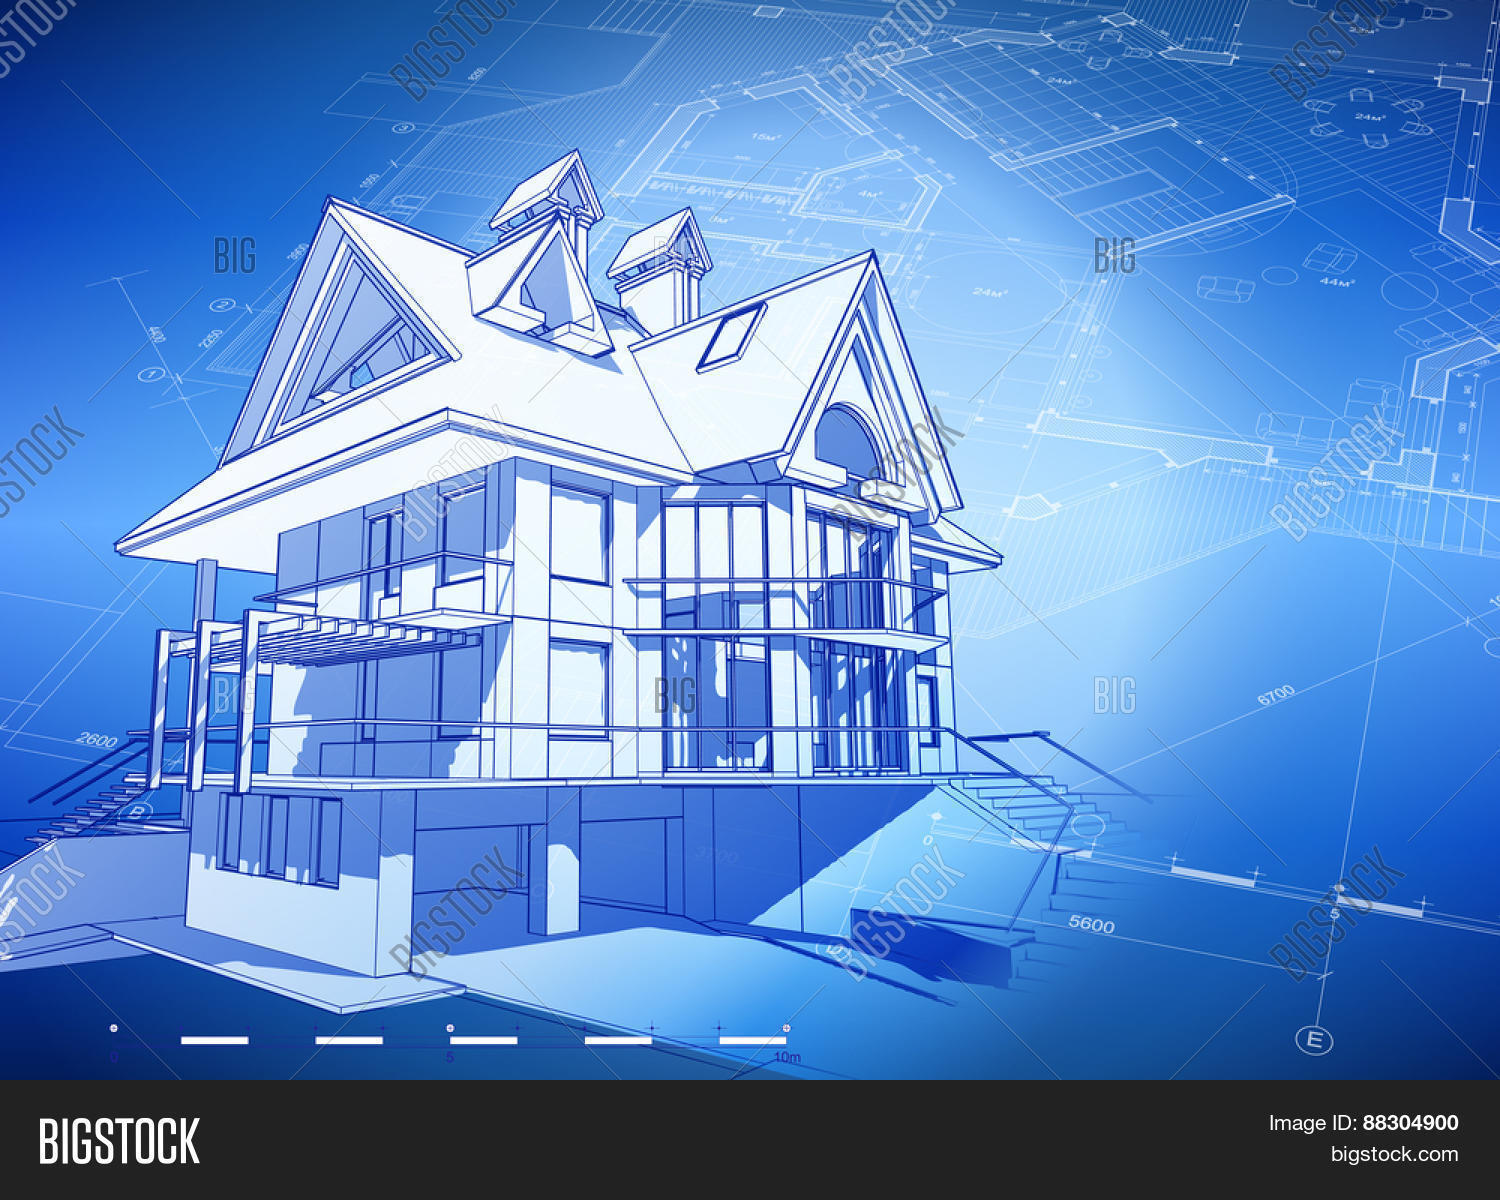 House Designs With Floor Plans Architecture Design Blueprint 3d Vector Amp Photo Bigstock